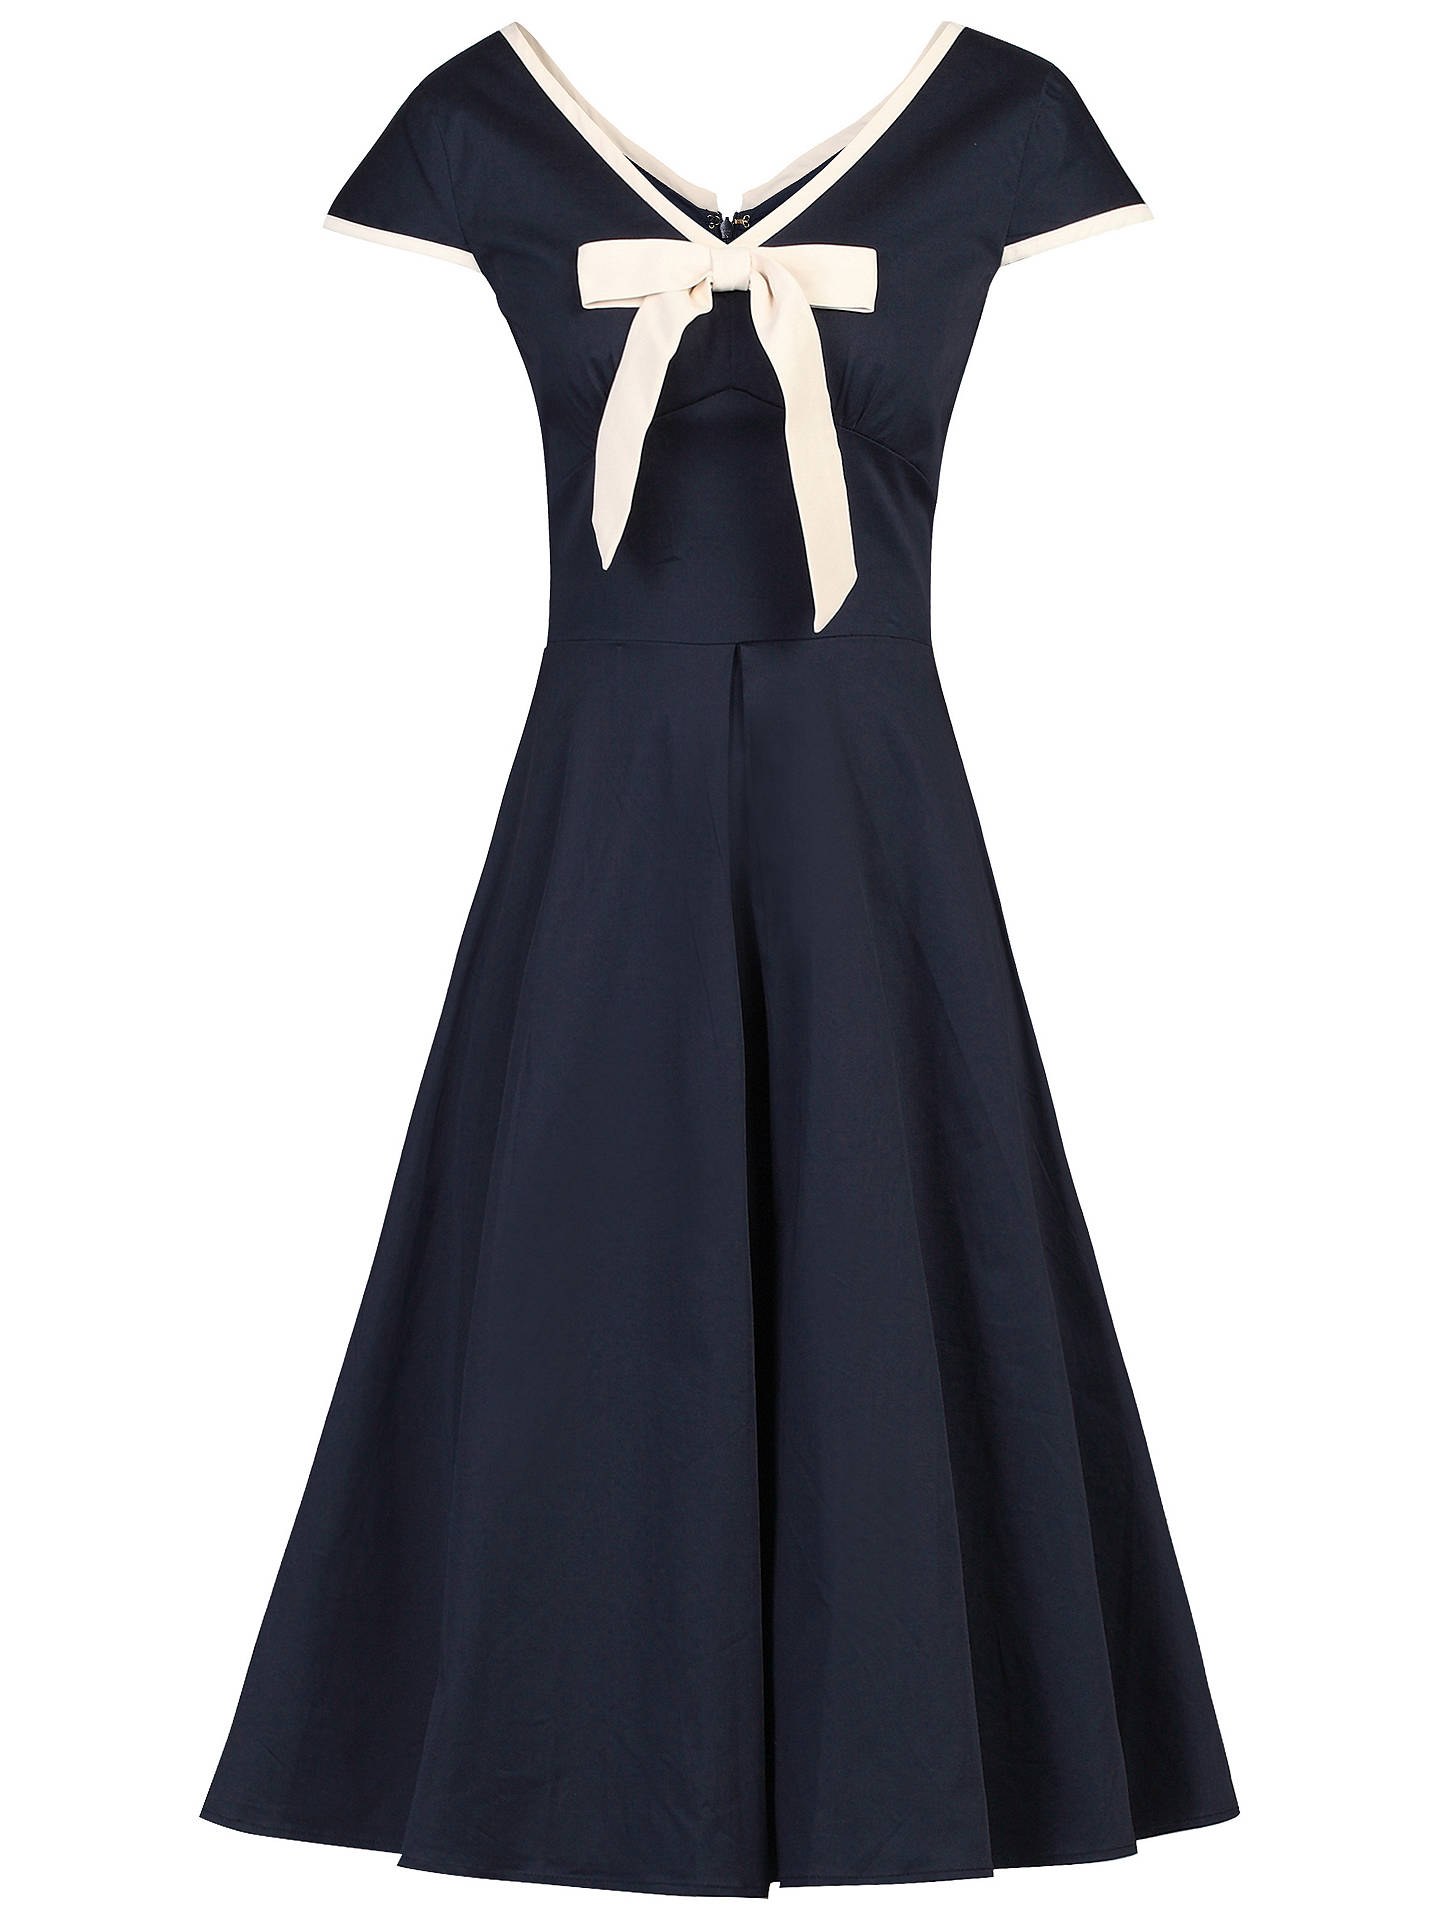 BuyJolie Moi Bow Detail 50s Flare Dress, Navy, 8 Online at johnlewis.com